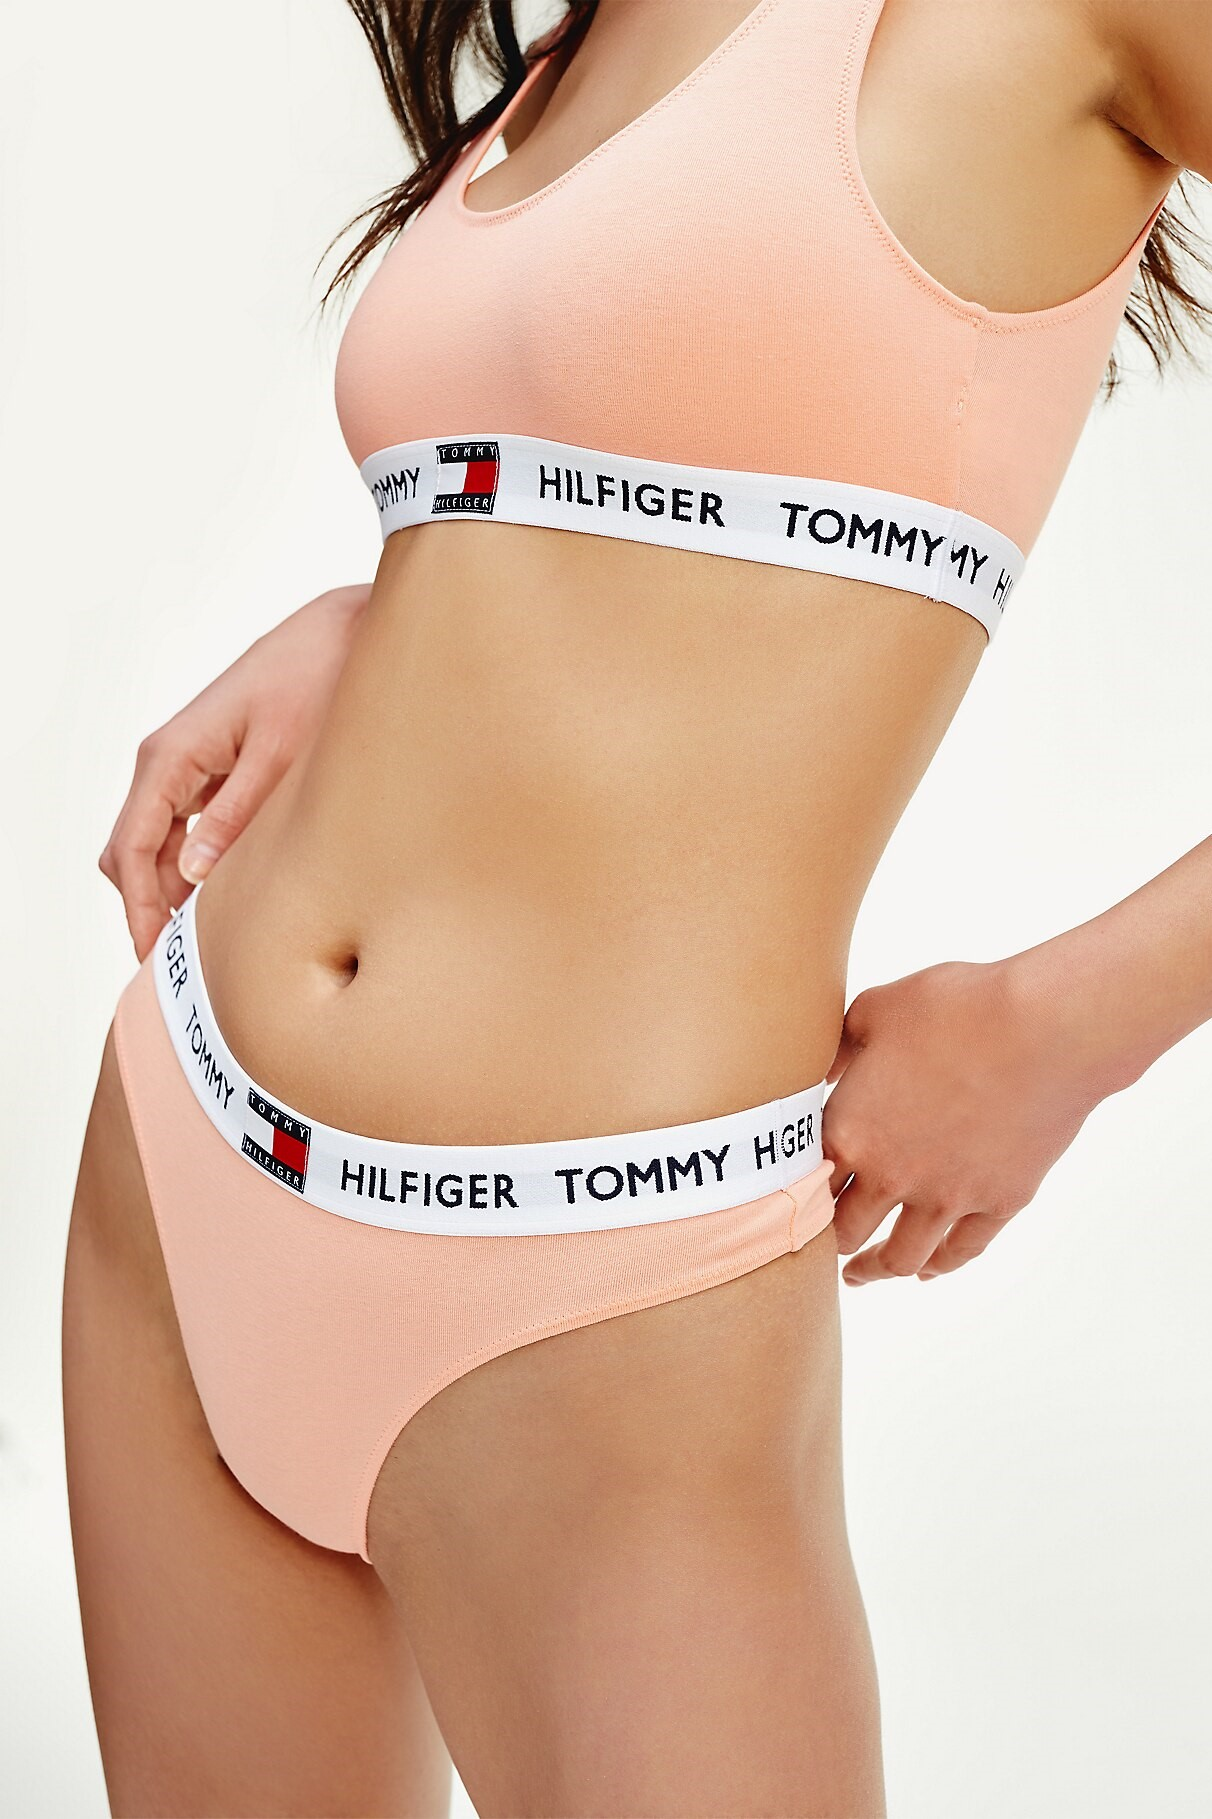 Tommy Hilfiger thong